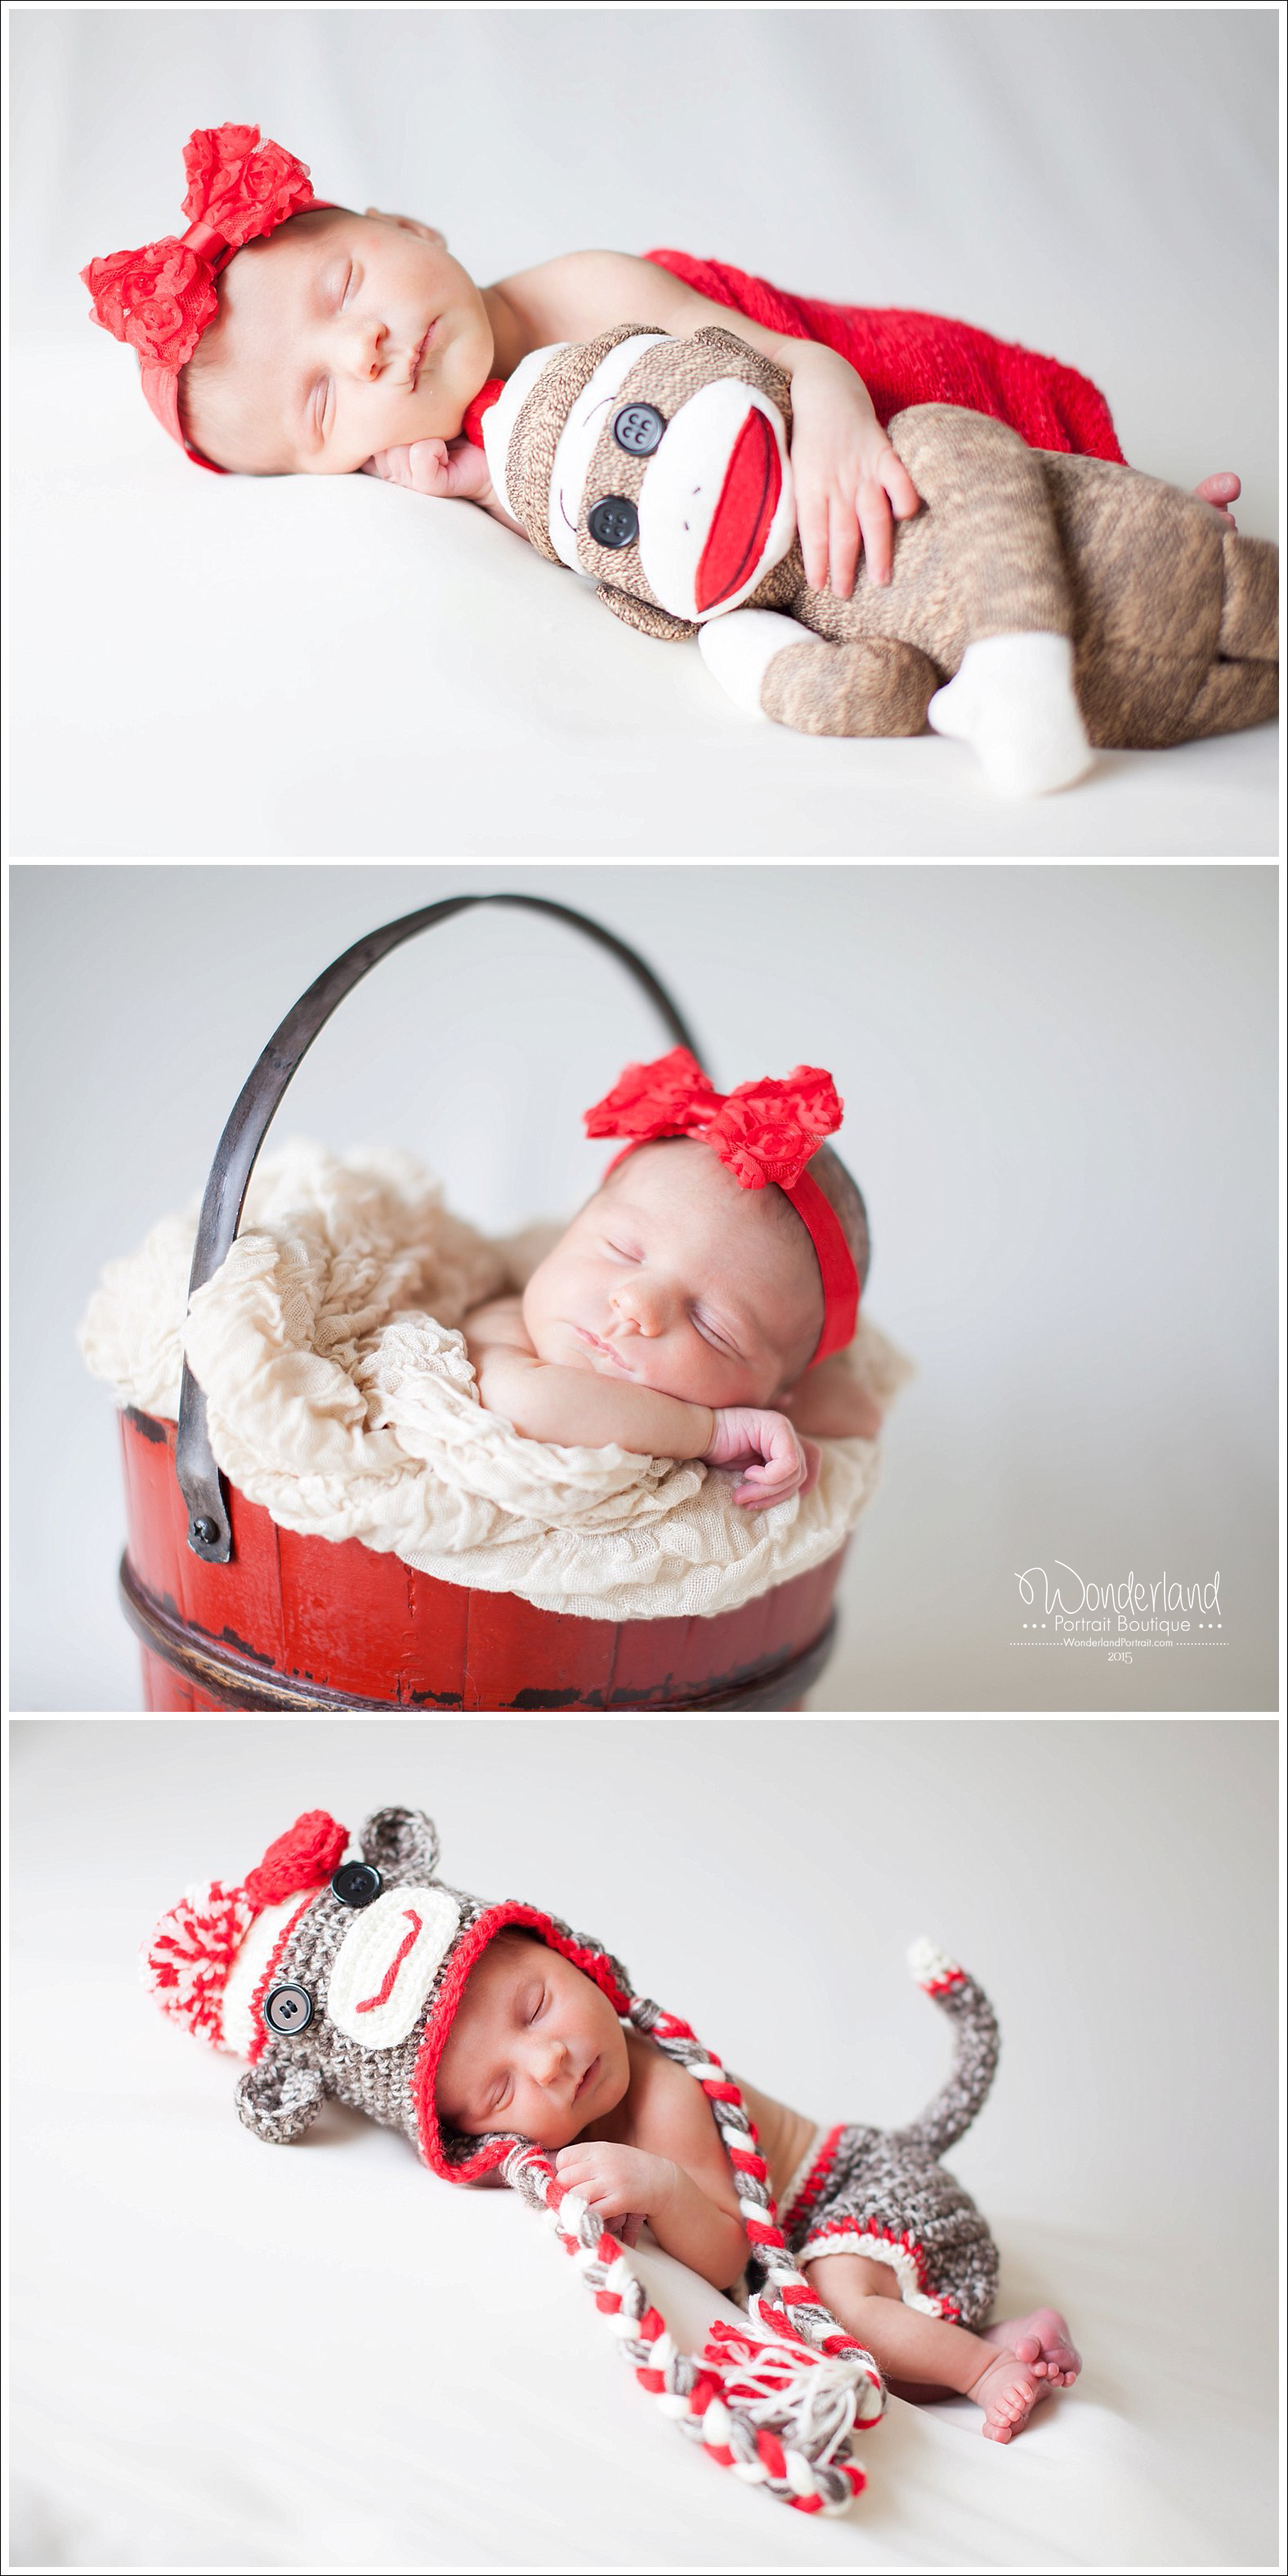 Richboro PA Newborn photographer Sock Monkey theme photo ideas | WonderlandPortrait.com